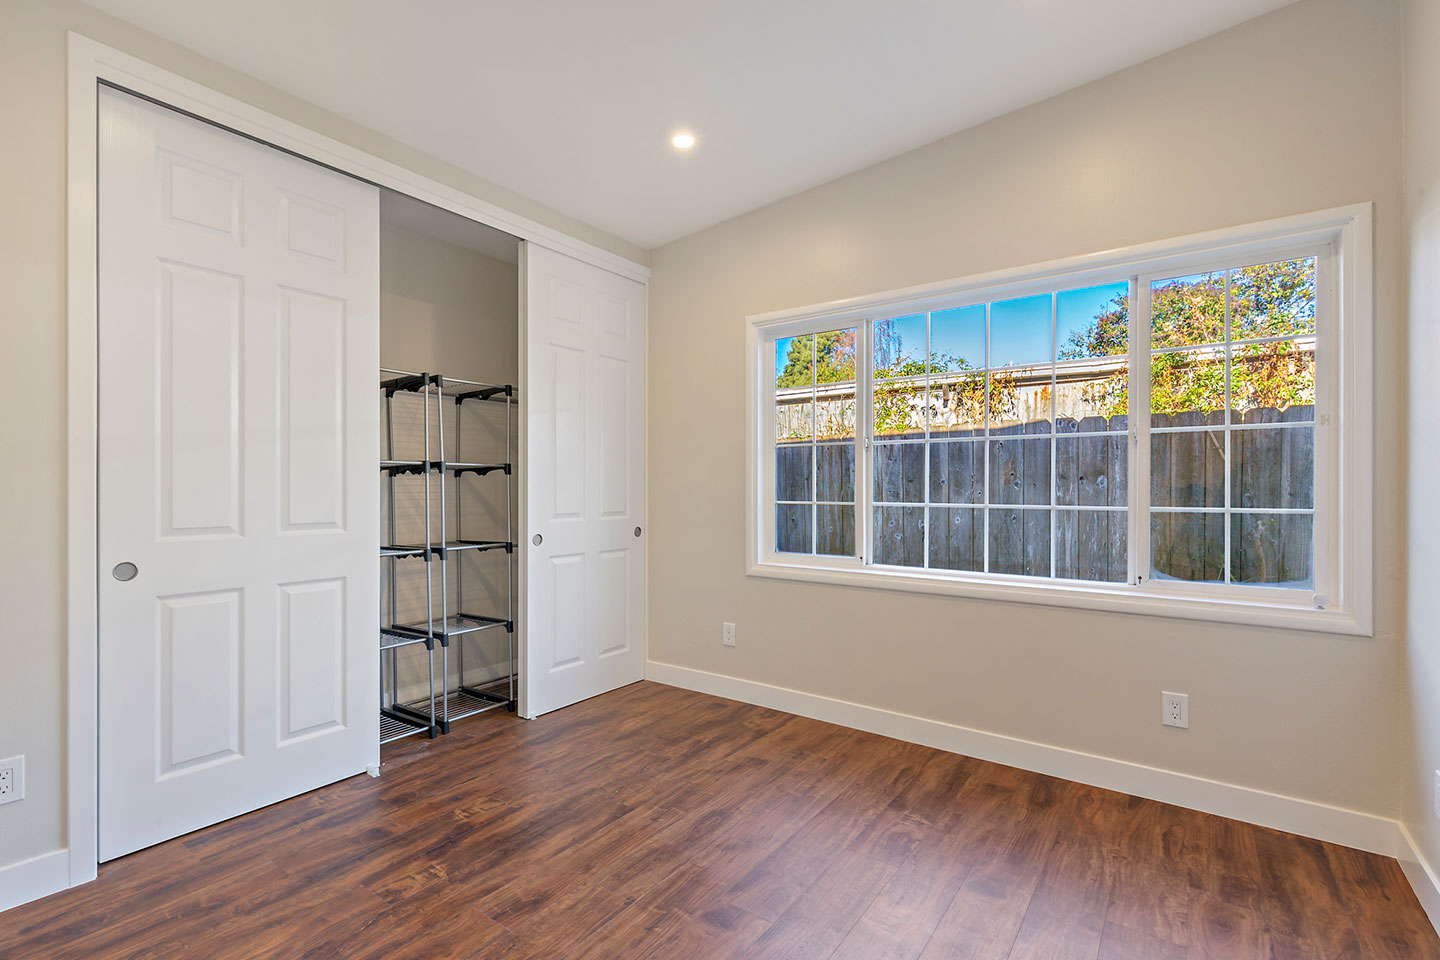 LVL floors with sliding doors for the closet